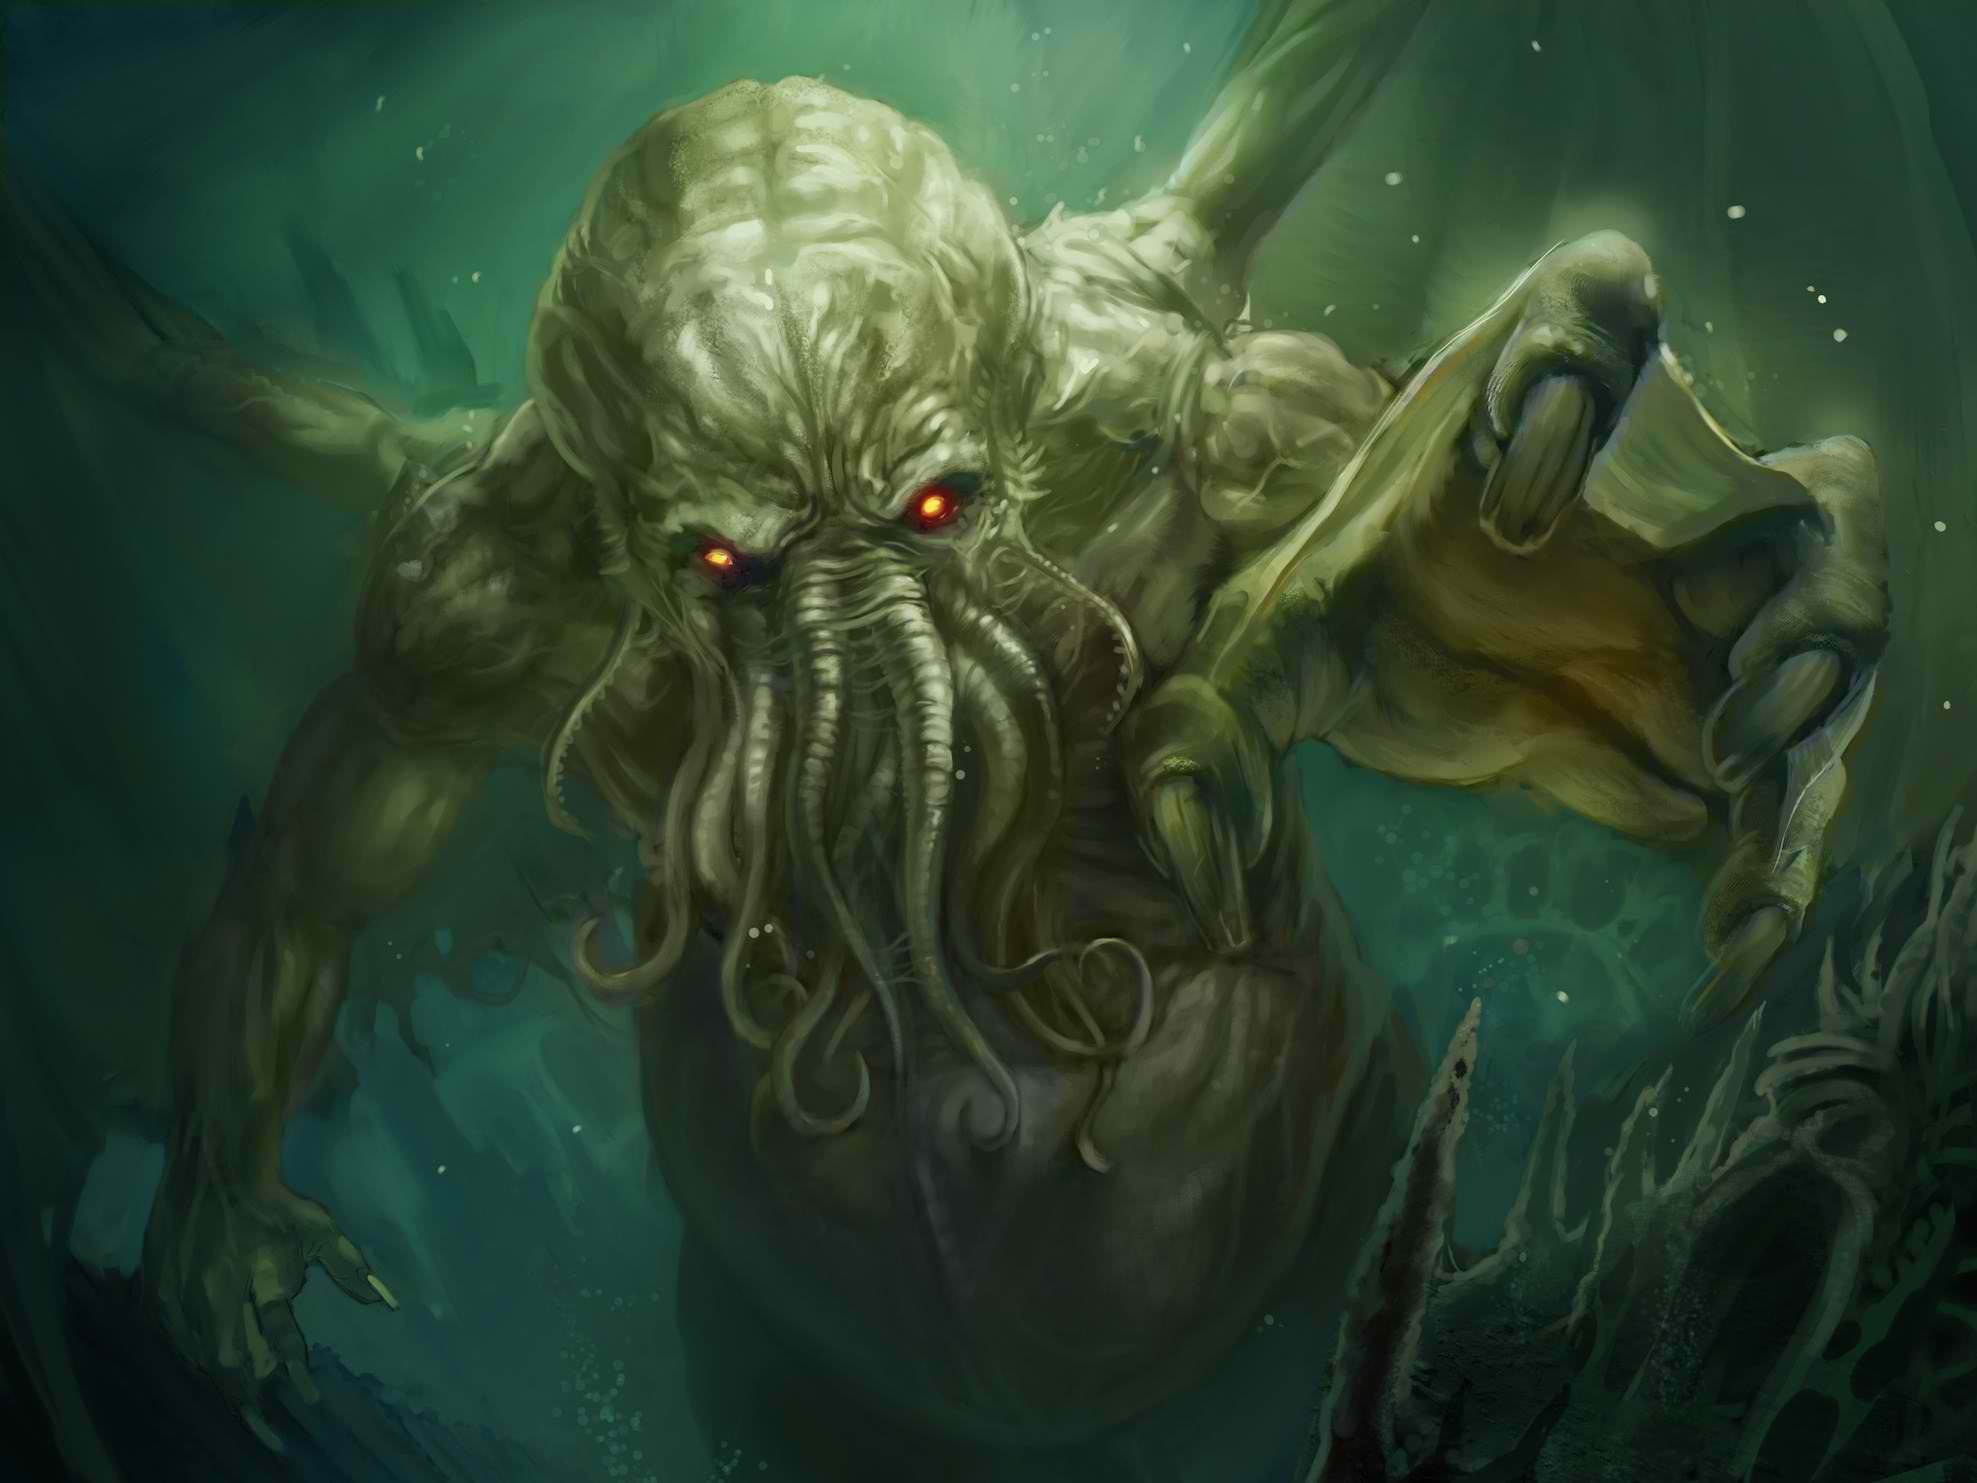 Cthulhu Computer Wallpapers, Desktop Backgrounds 1977x1483 Id: 342958